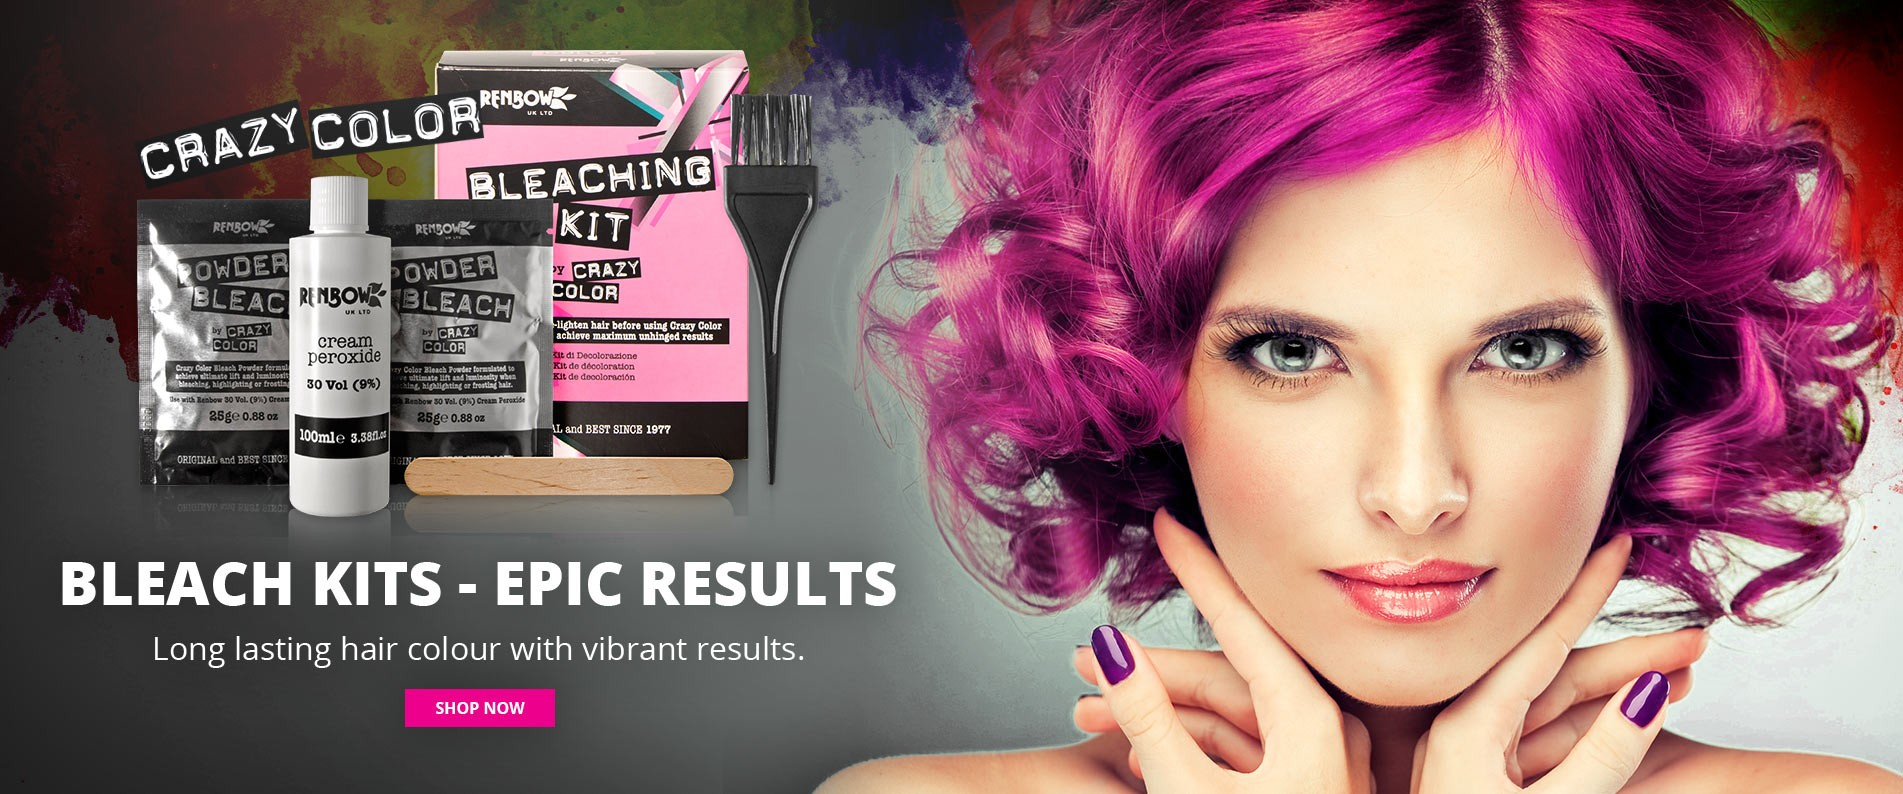 Hair Dye, Bright Temporary Color Products, Shop Best Brands Online